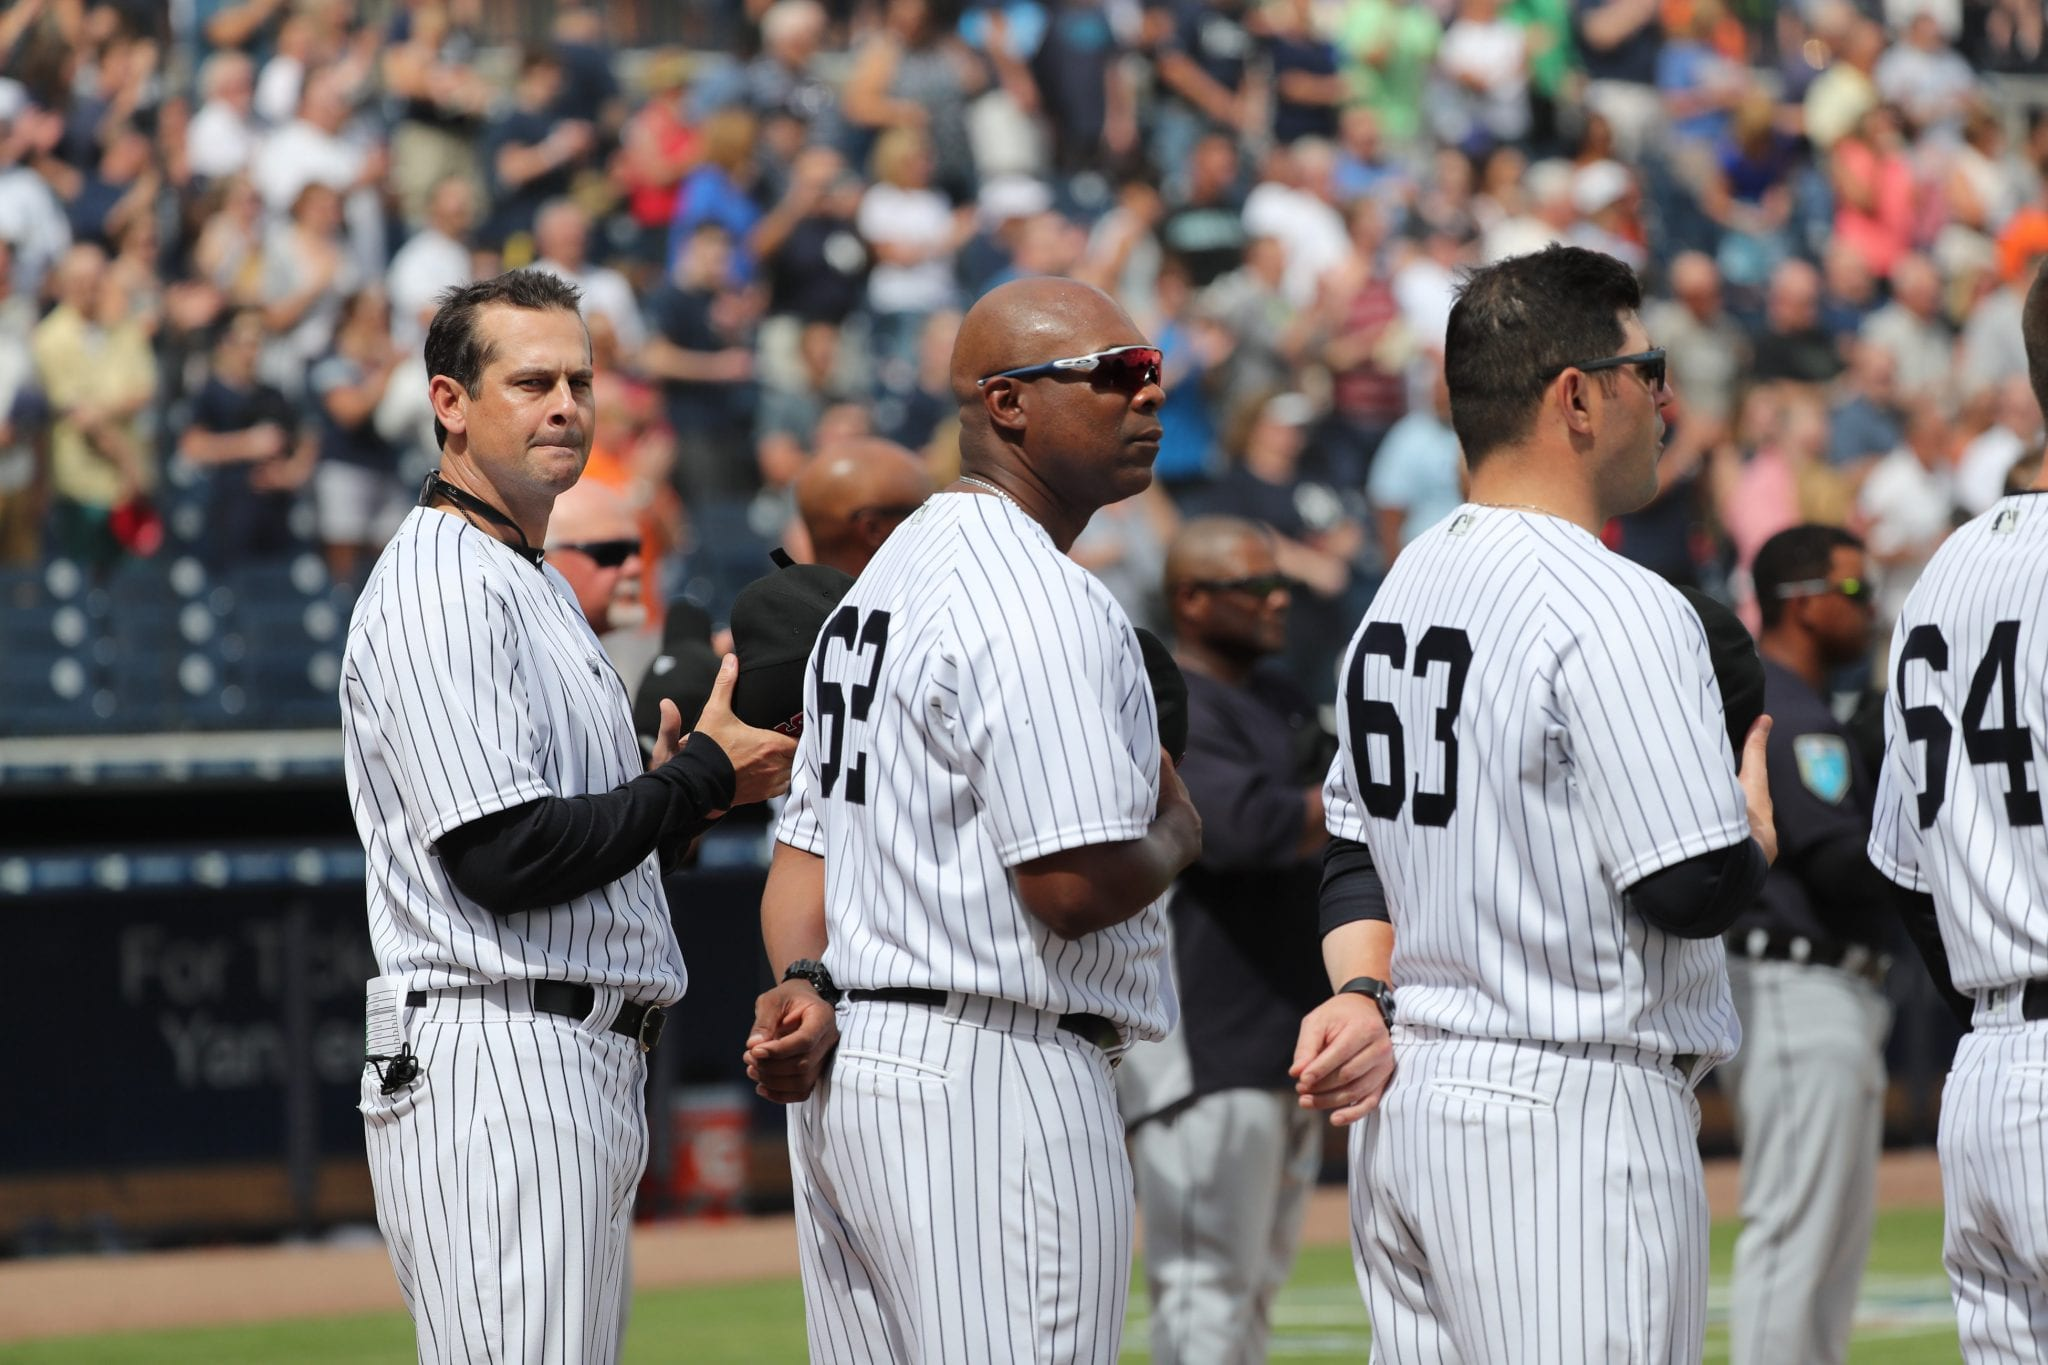 New York Yankees: Hitting coach Marcus Thames and 3rd base coach Phil Nevin are gone